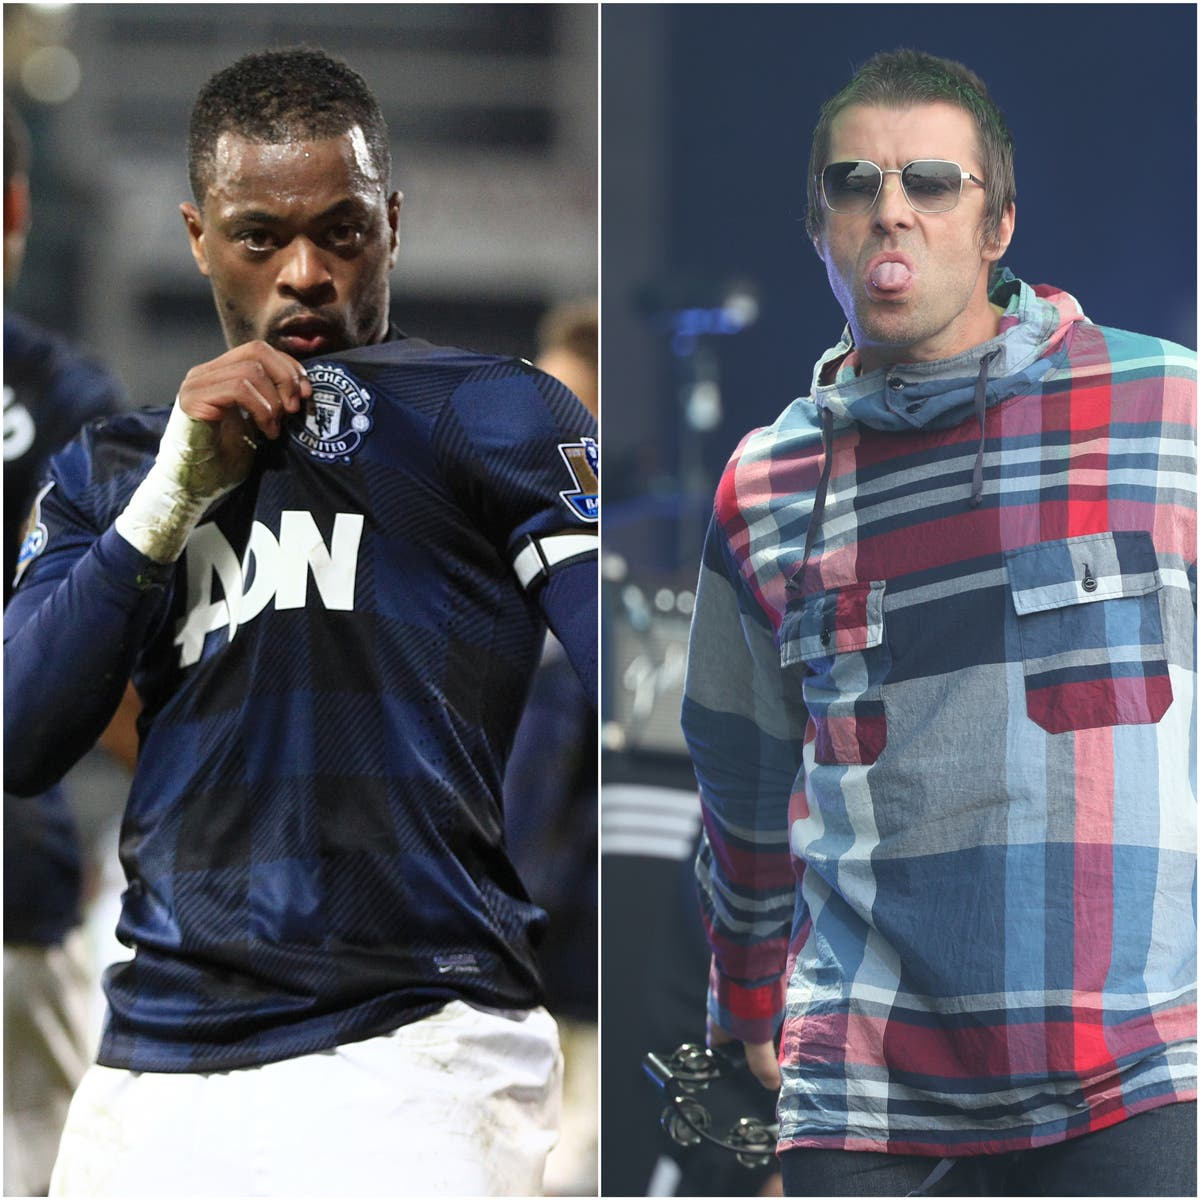 Patrice Evra mocks Liam Gallagher with Oasis remix – Monday's sporting social